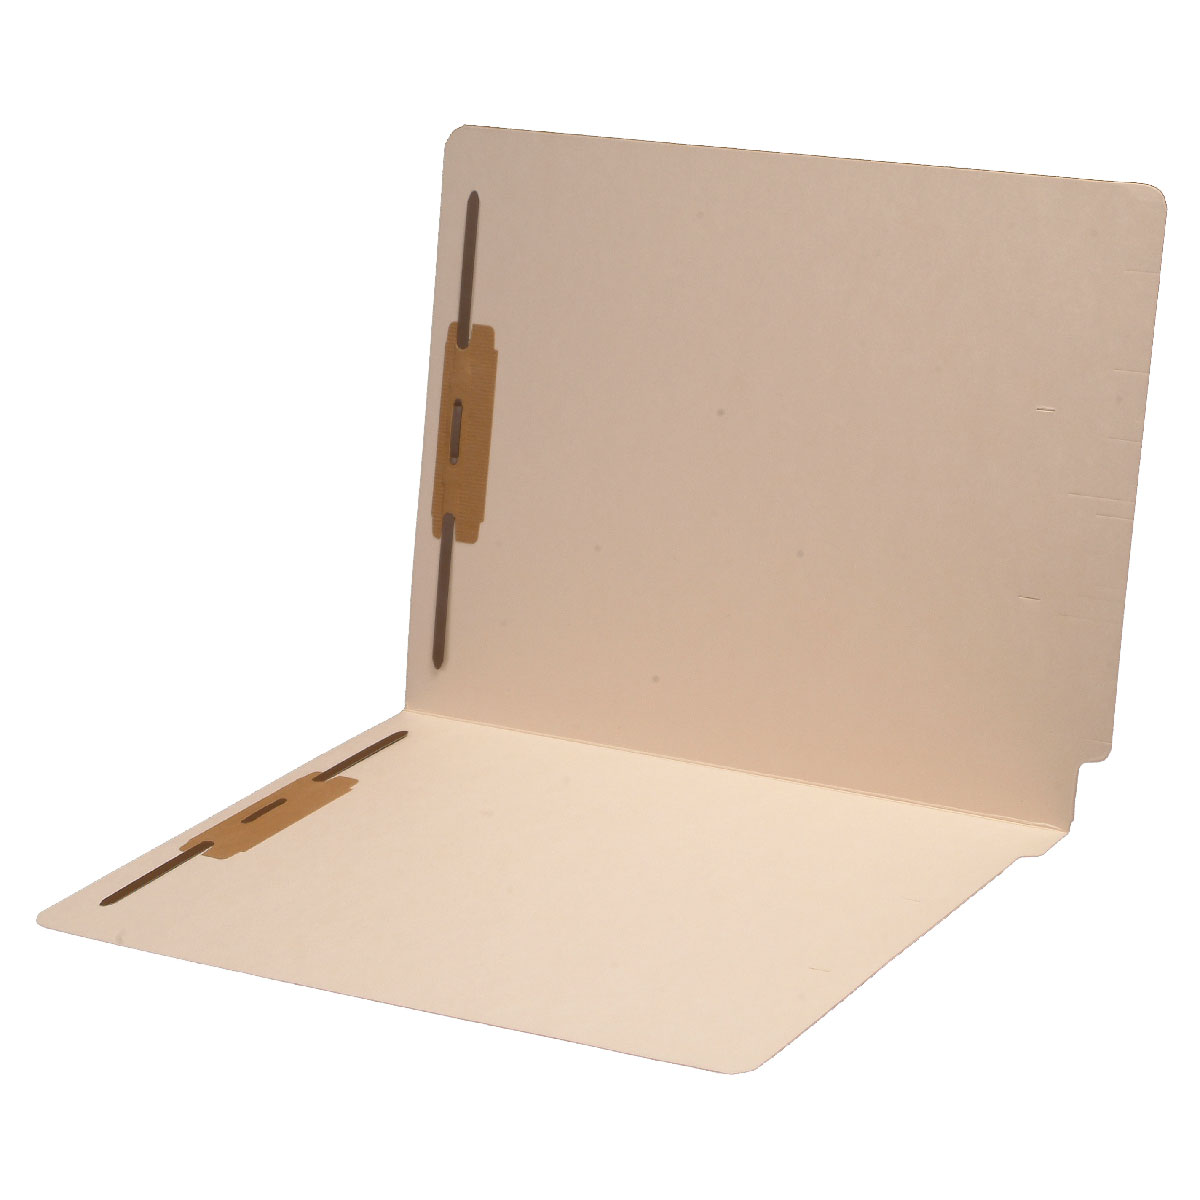 S-9087 - 18 pt Manila Folders, Full Cut End Tab, Letter Size, Fastener Pos #1 & #3 (Box of 50)